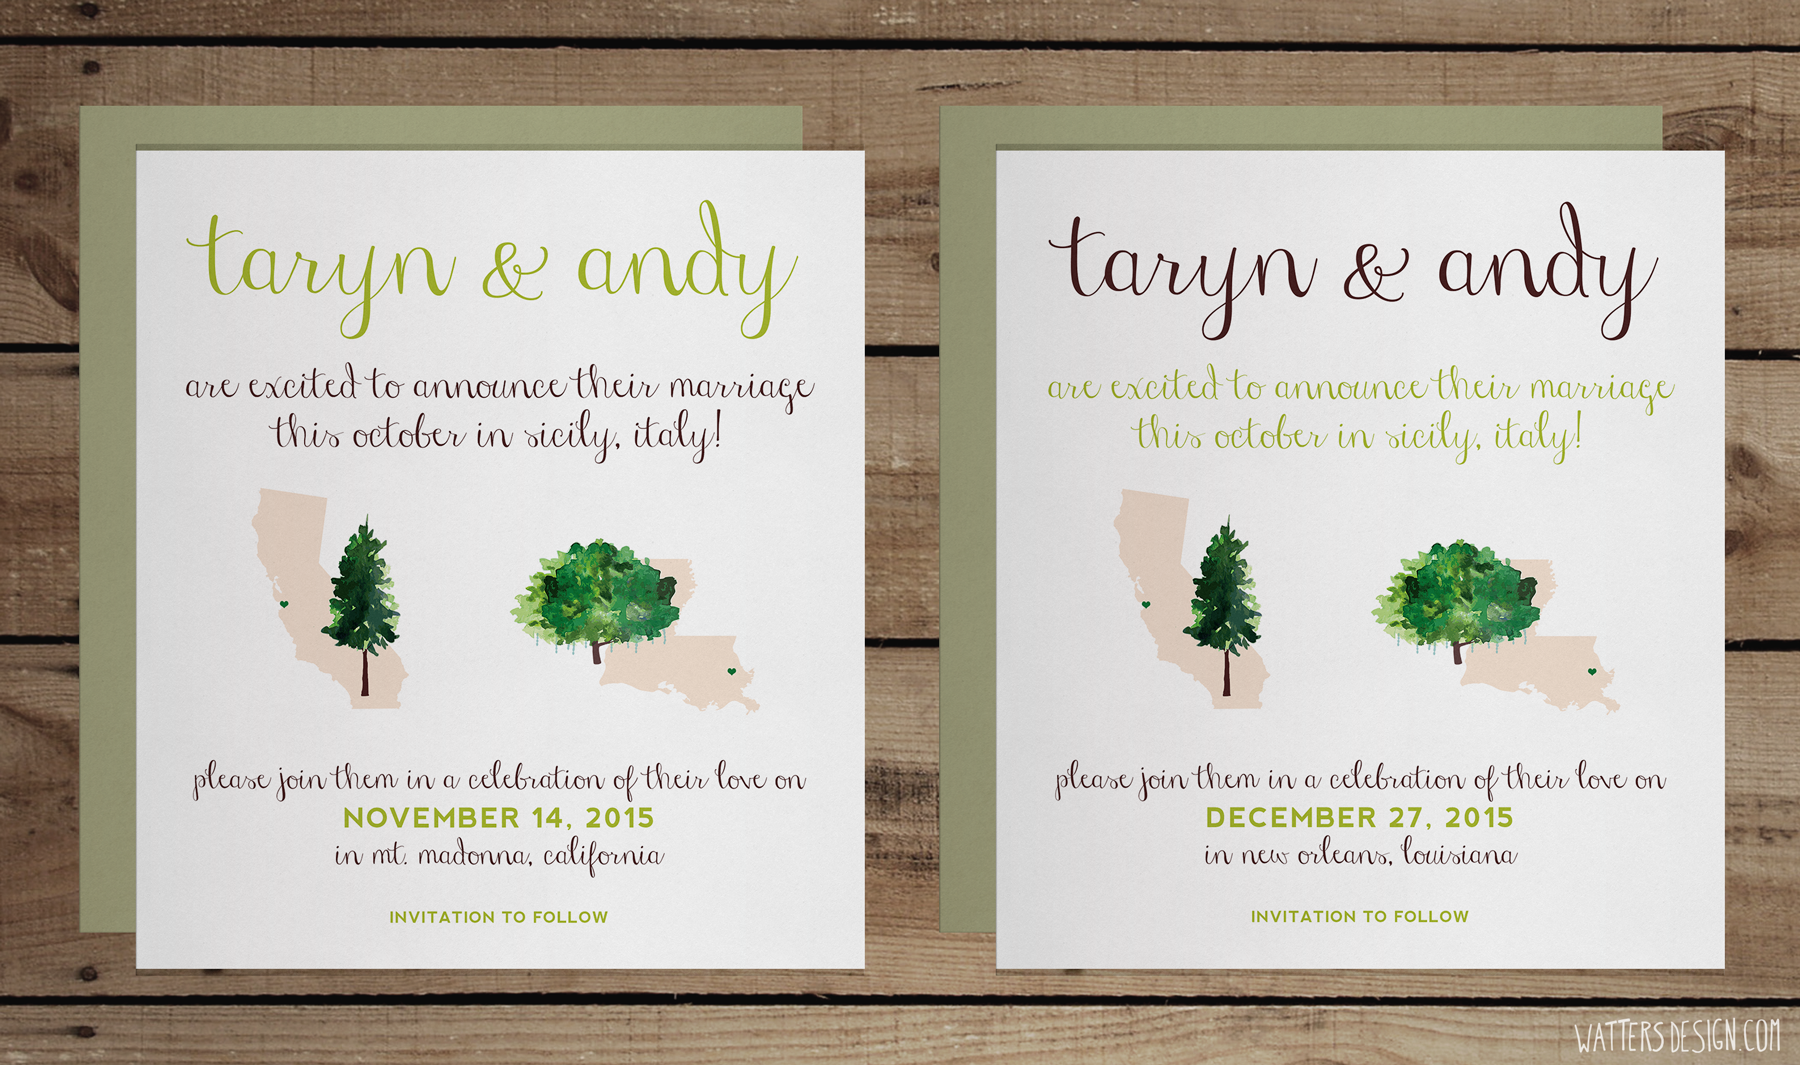 taryn_and_andy_save_the_date_LA.png